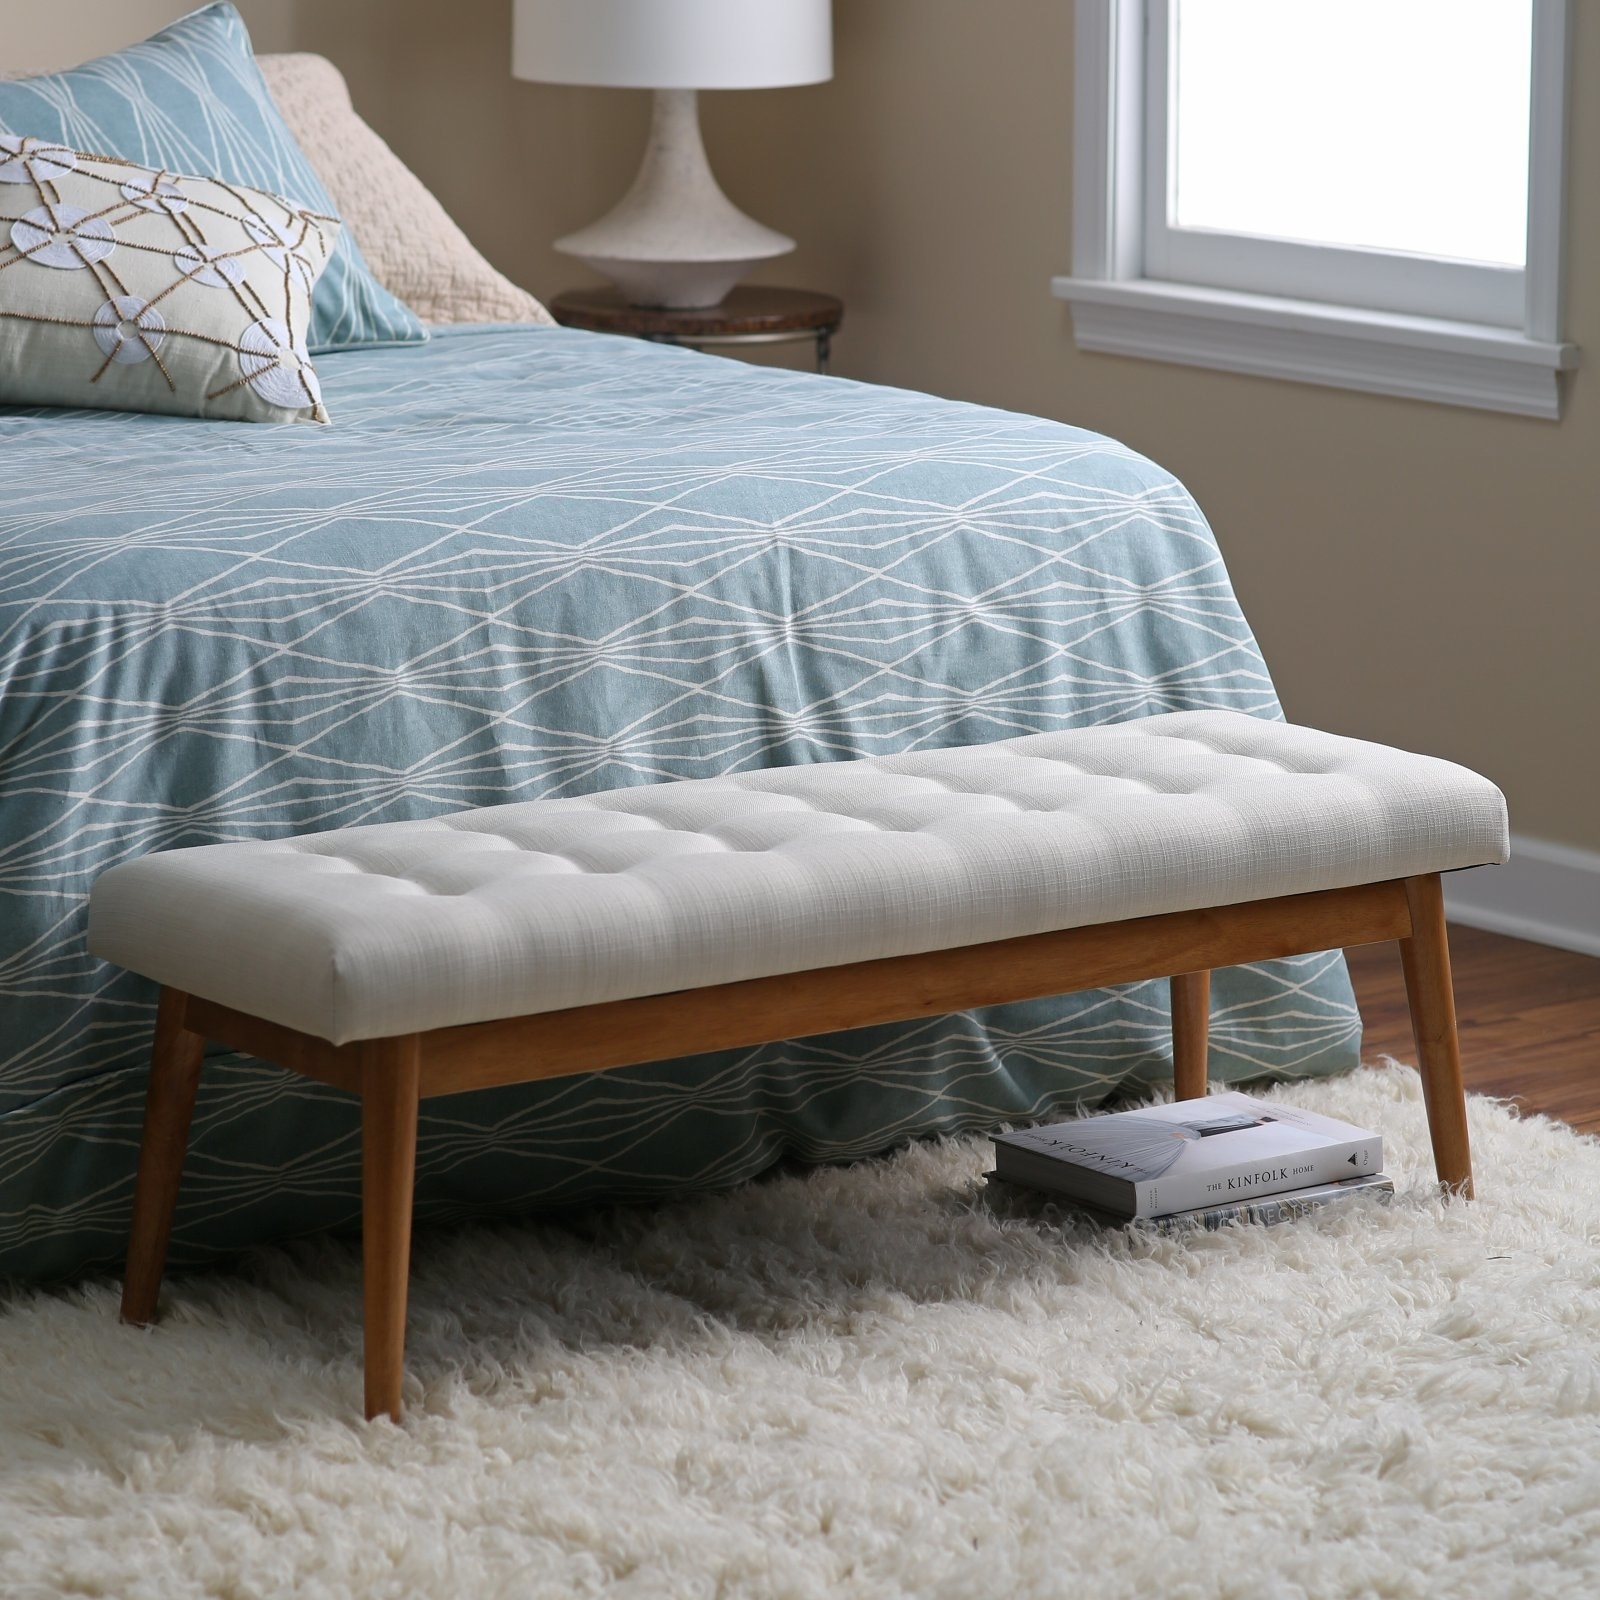 """Promising review: """"We have a really tall bed, so I needed a nice bench so that it would be easier to get my socks on in the morning. This fit the bill perfectly and was a great price. The bench is very solid and looks very nice in our bedroom. Came quickly and was easy to assemble."""" —AnnPrice: $155.69"""